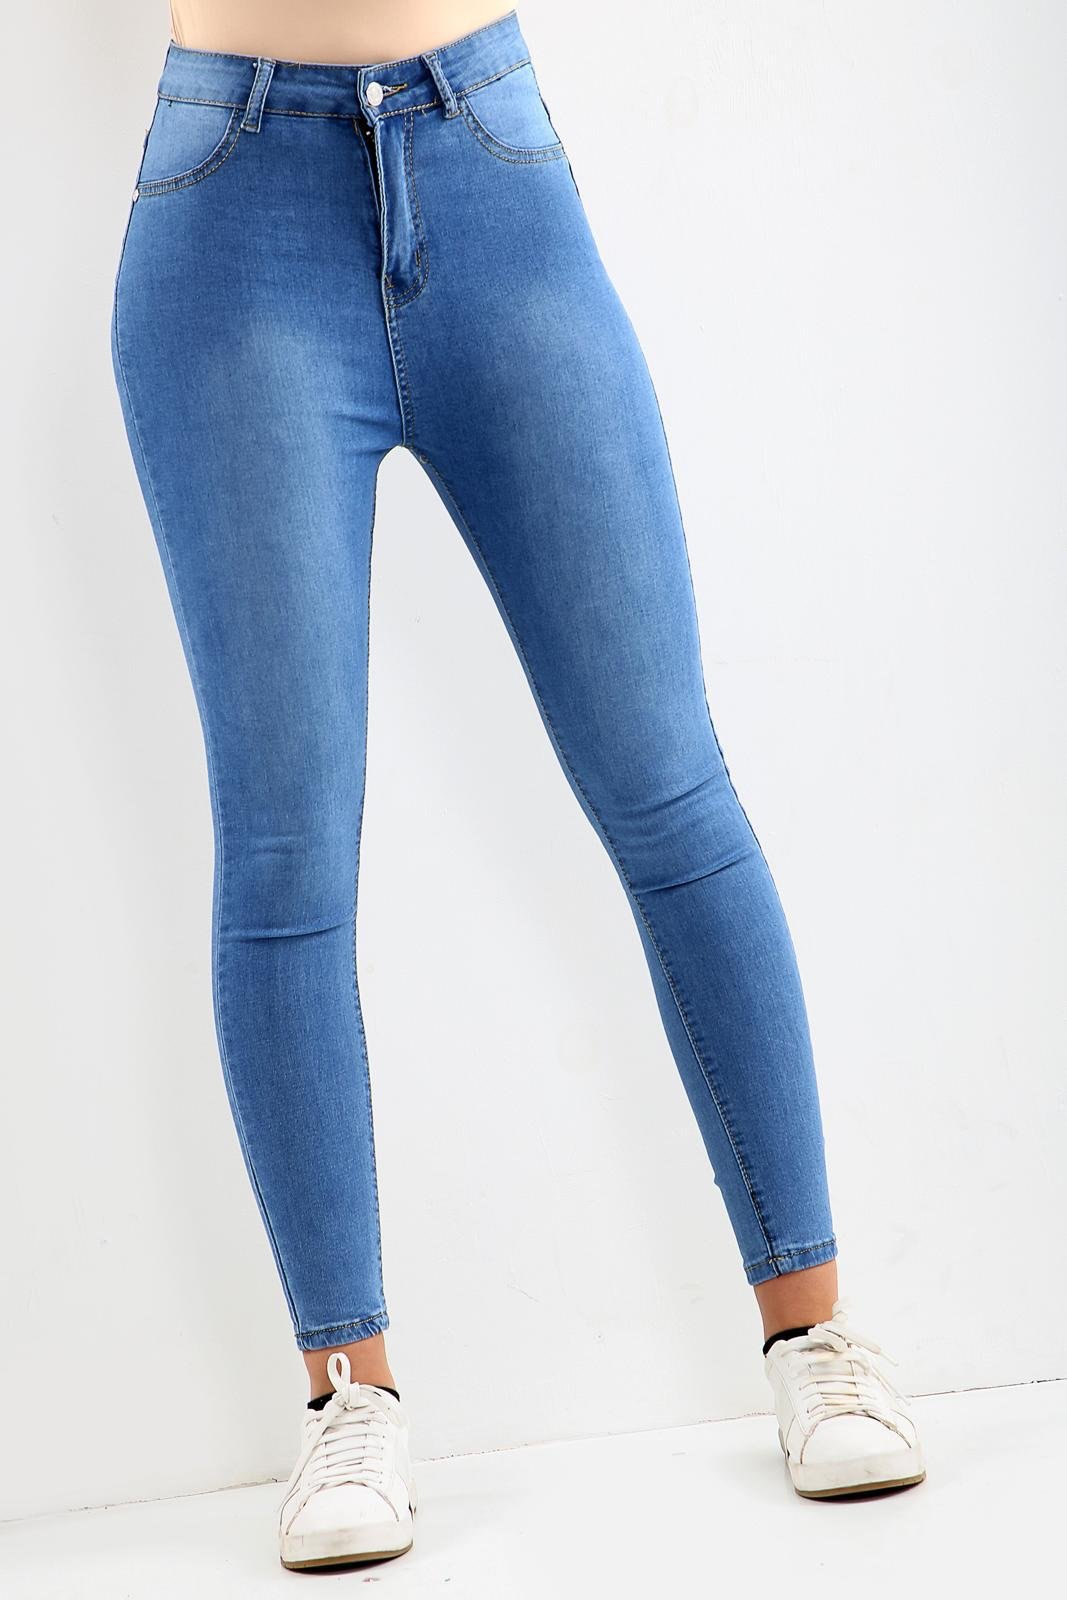 LADIES HIGH WAISTED Blue JEANs